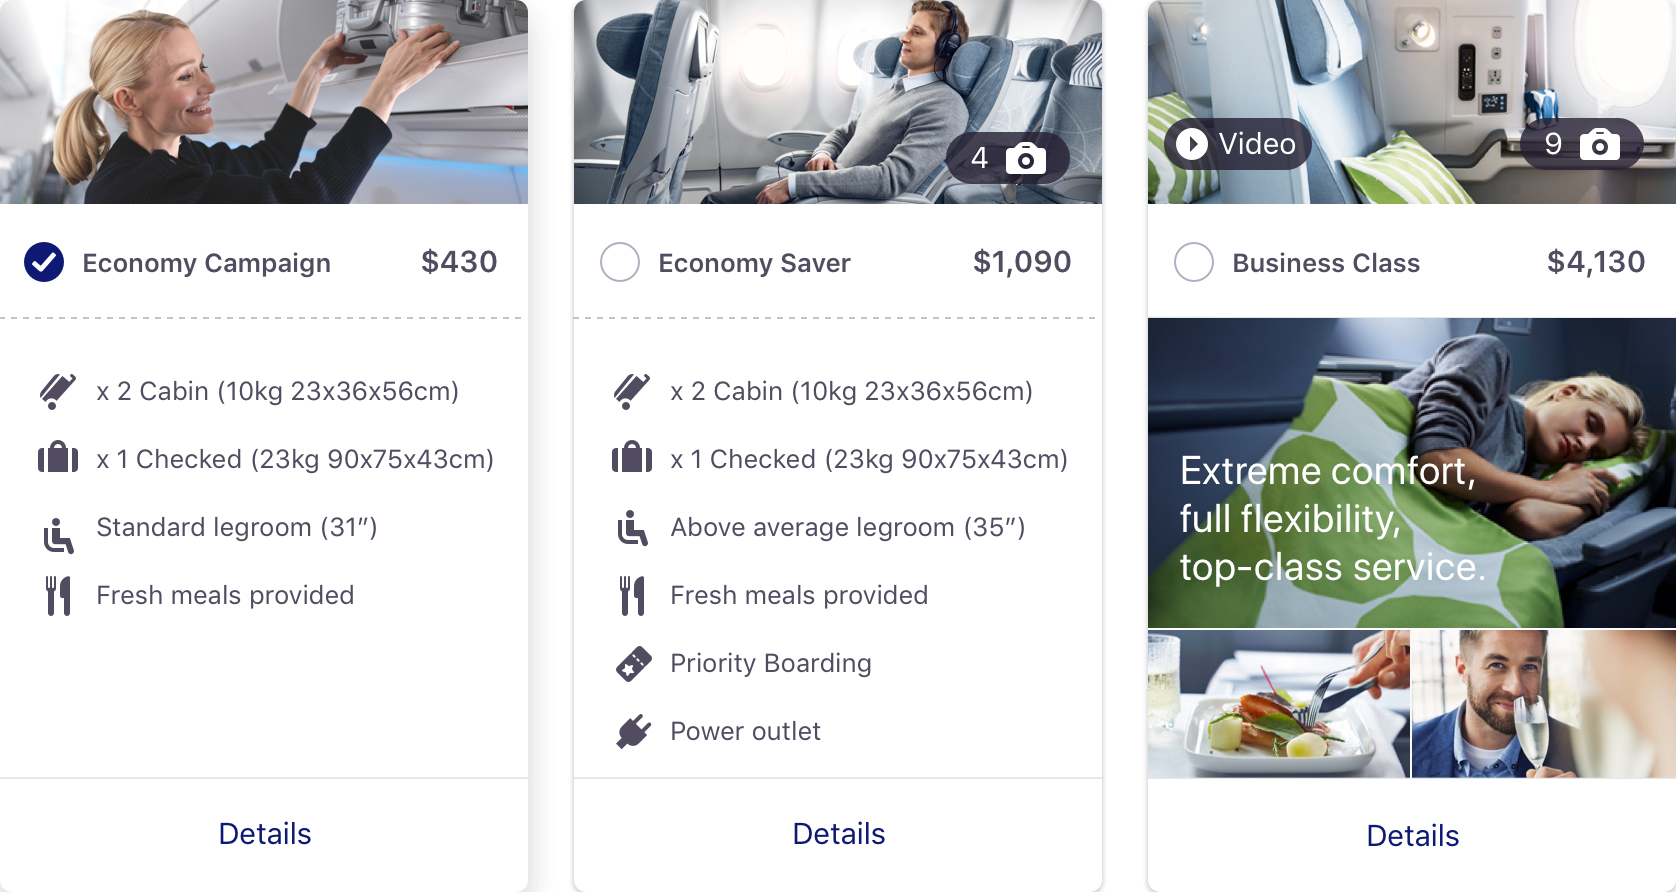 Direct Booking enhances the user experience